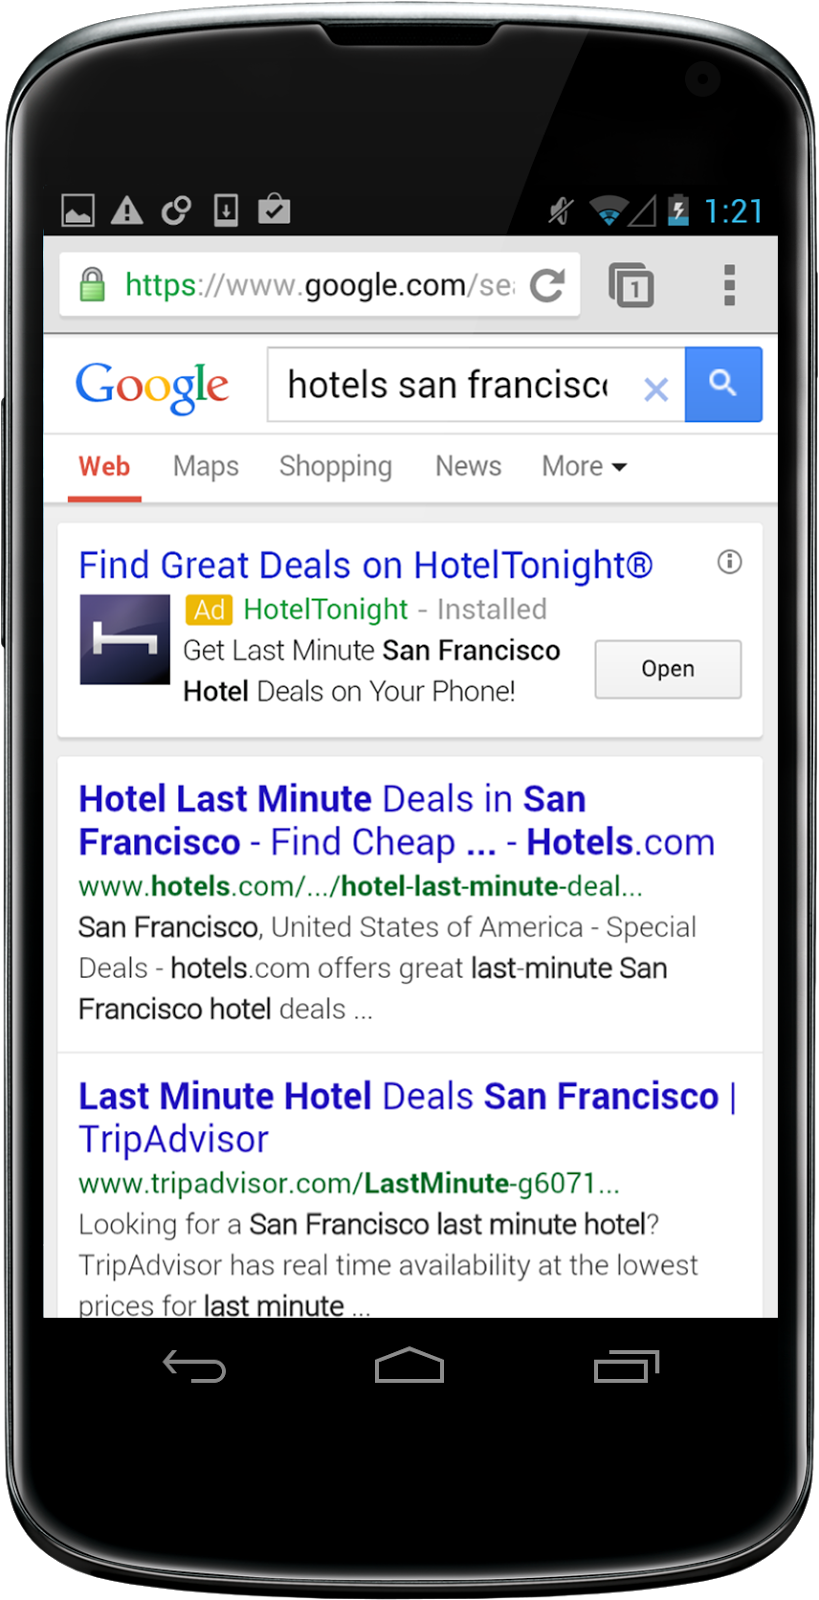 Inside AdWords: Sharing the latest AdWords innovations